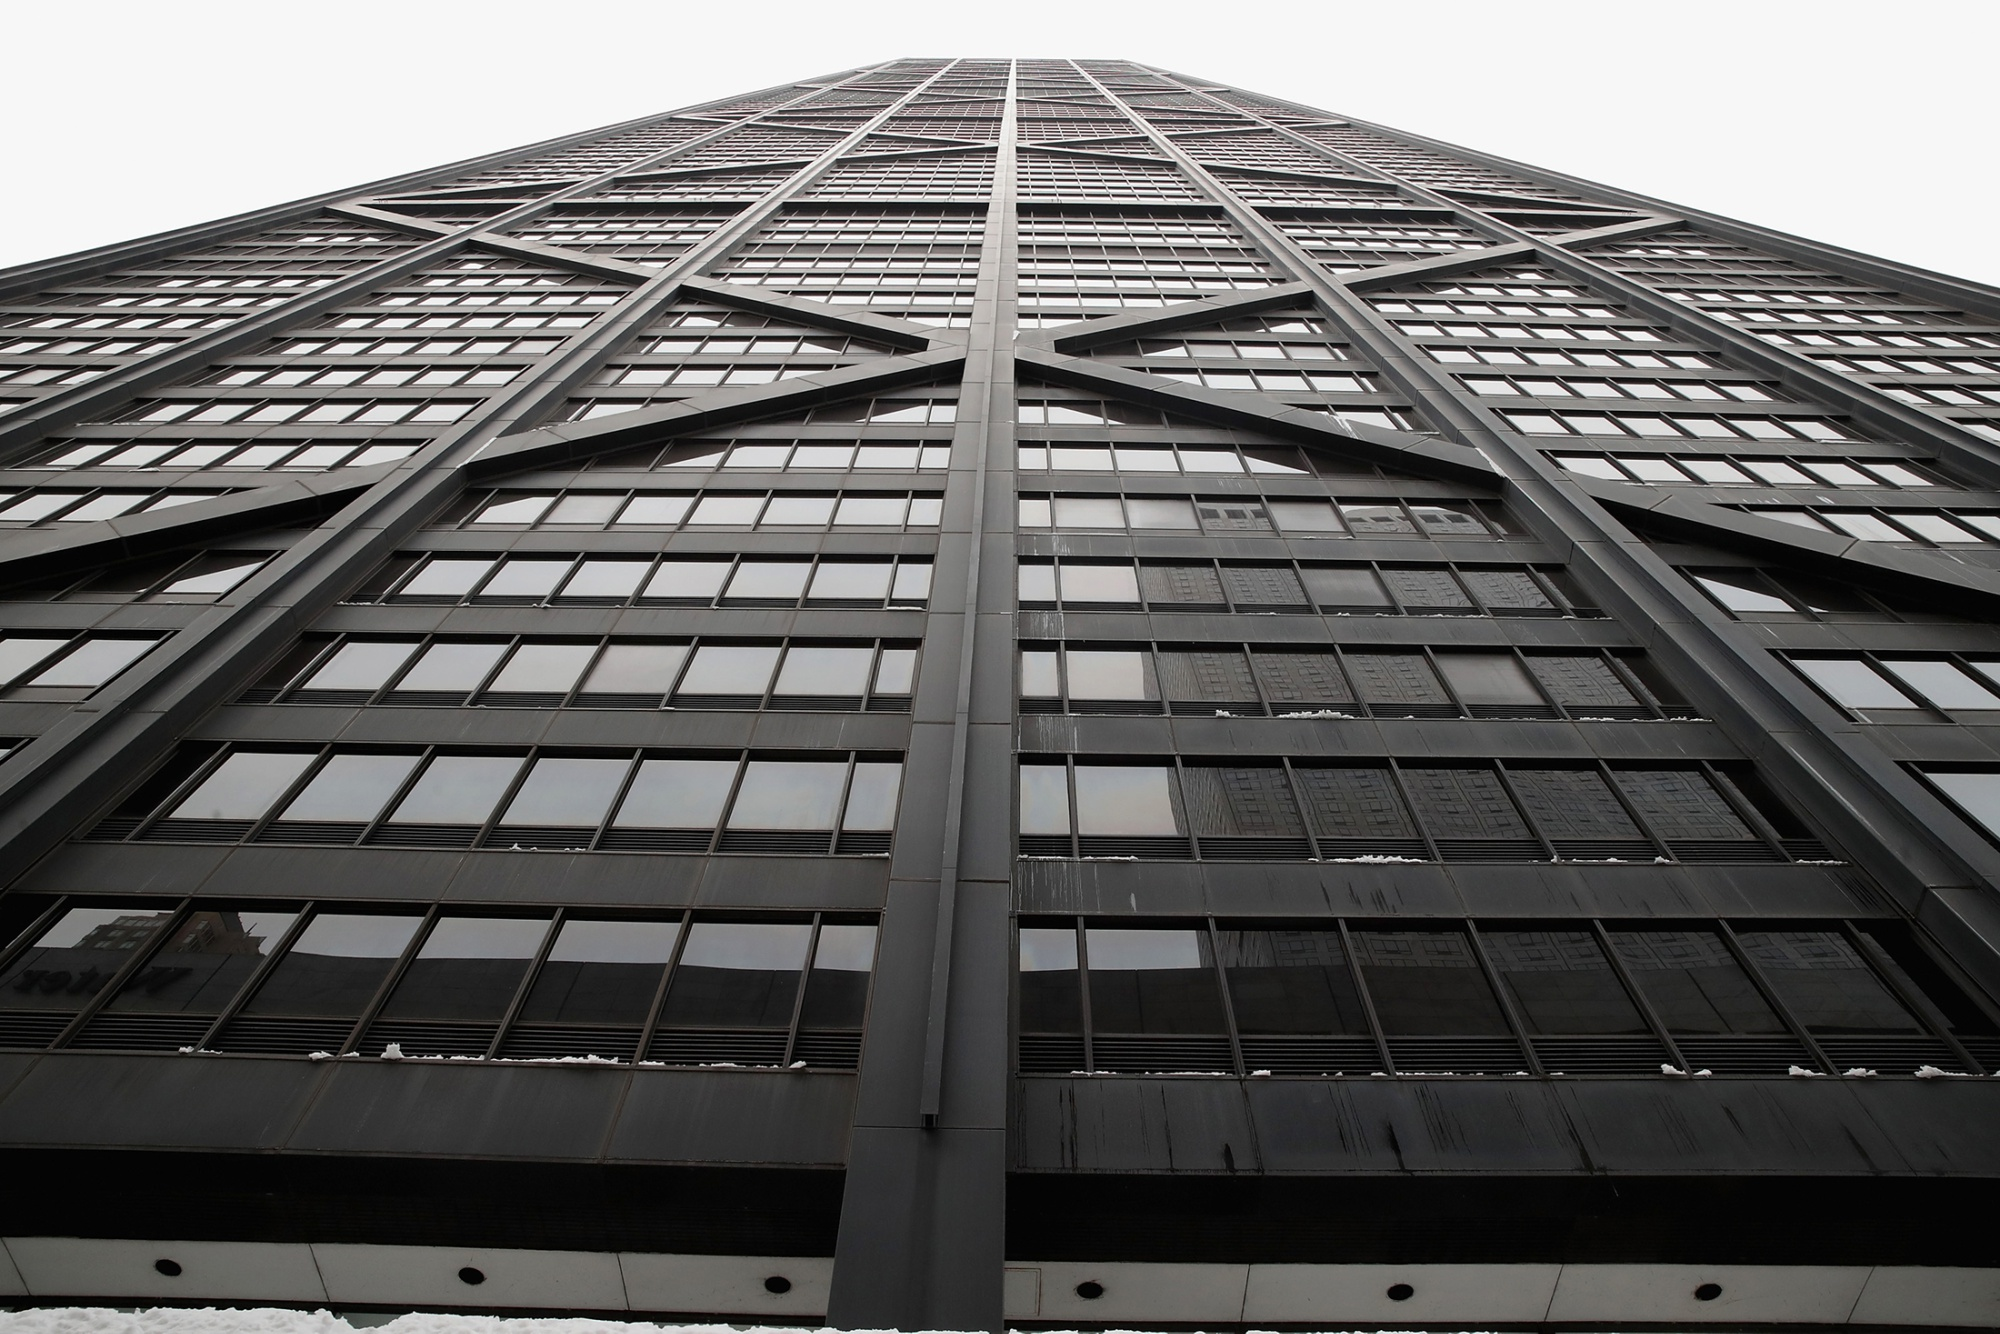 bloomberg.com - Elevator in Chicago Skyscraper Fell 84 Floors Before Rescue